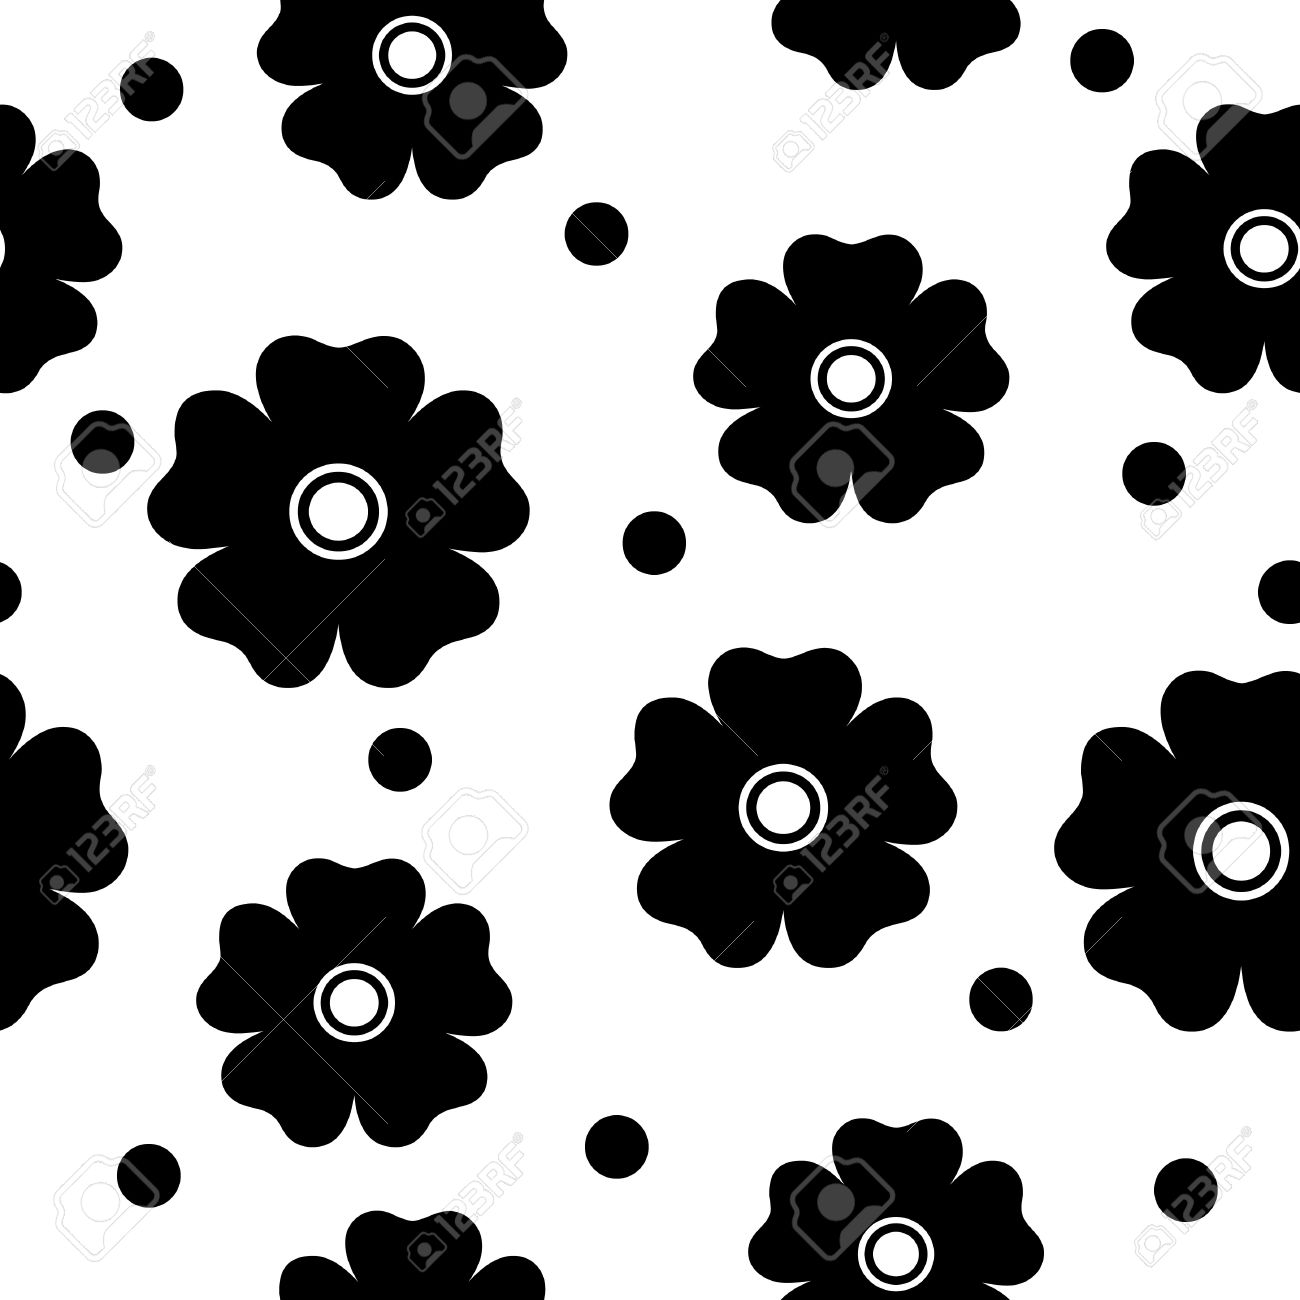 Simple black and white repeating flower background royalty free simple black and white repeating flower background stock vector 4644687 mightylinksfo